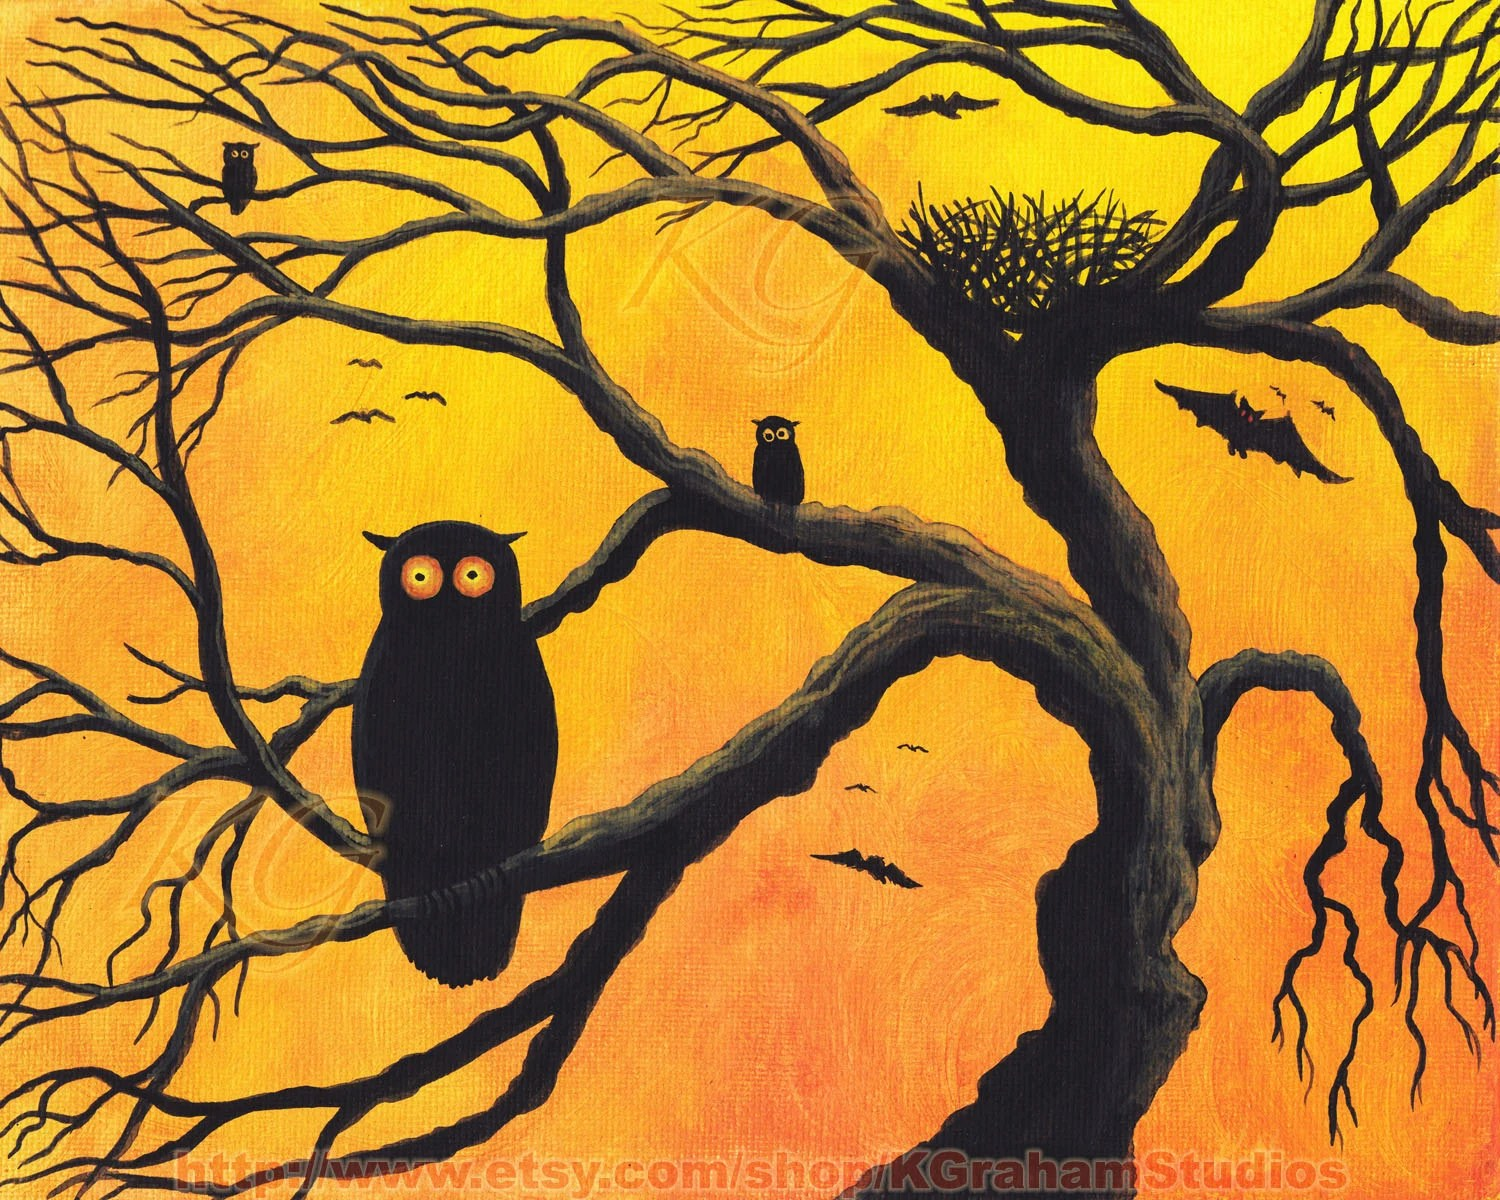 OWLS & BATS Halloween Original Painting 8X10 Spooky Tree Crazy Eyed Owl Eerie Orange Sky Birds Nest Demon Eyed Bat Animal Art by K Graham